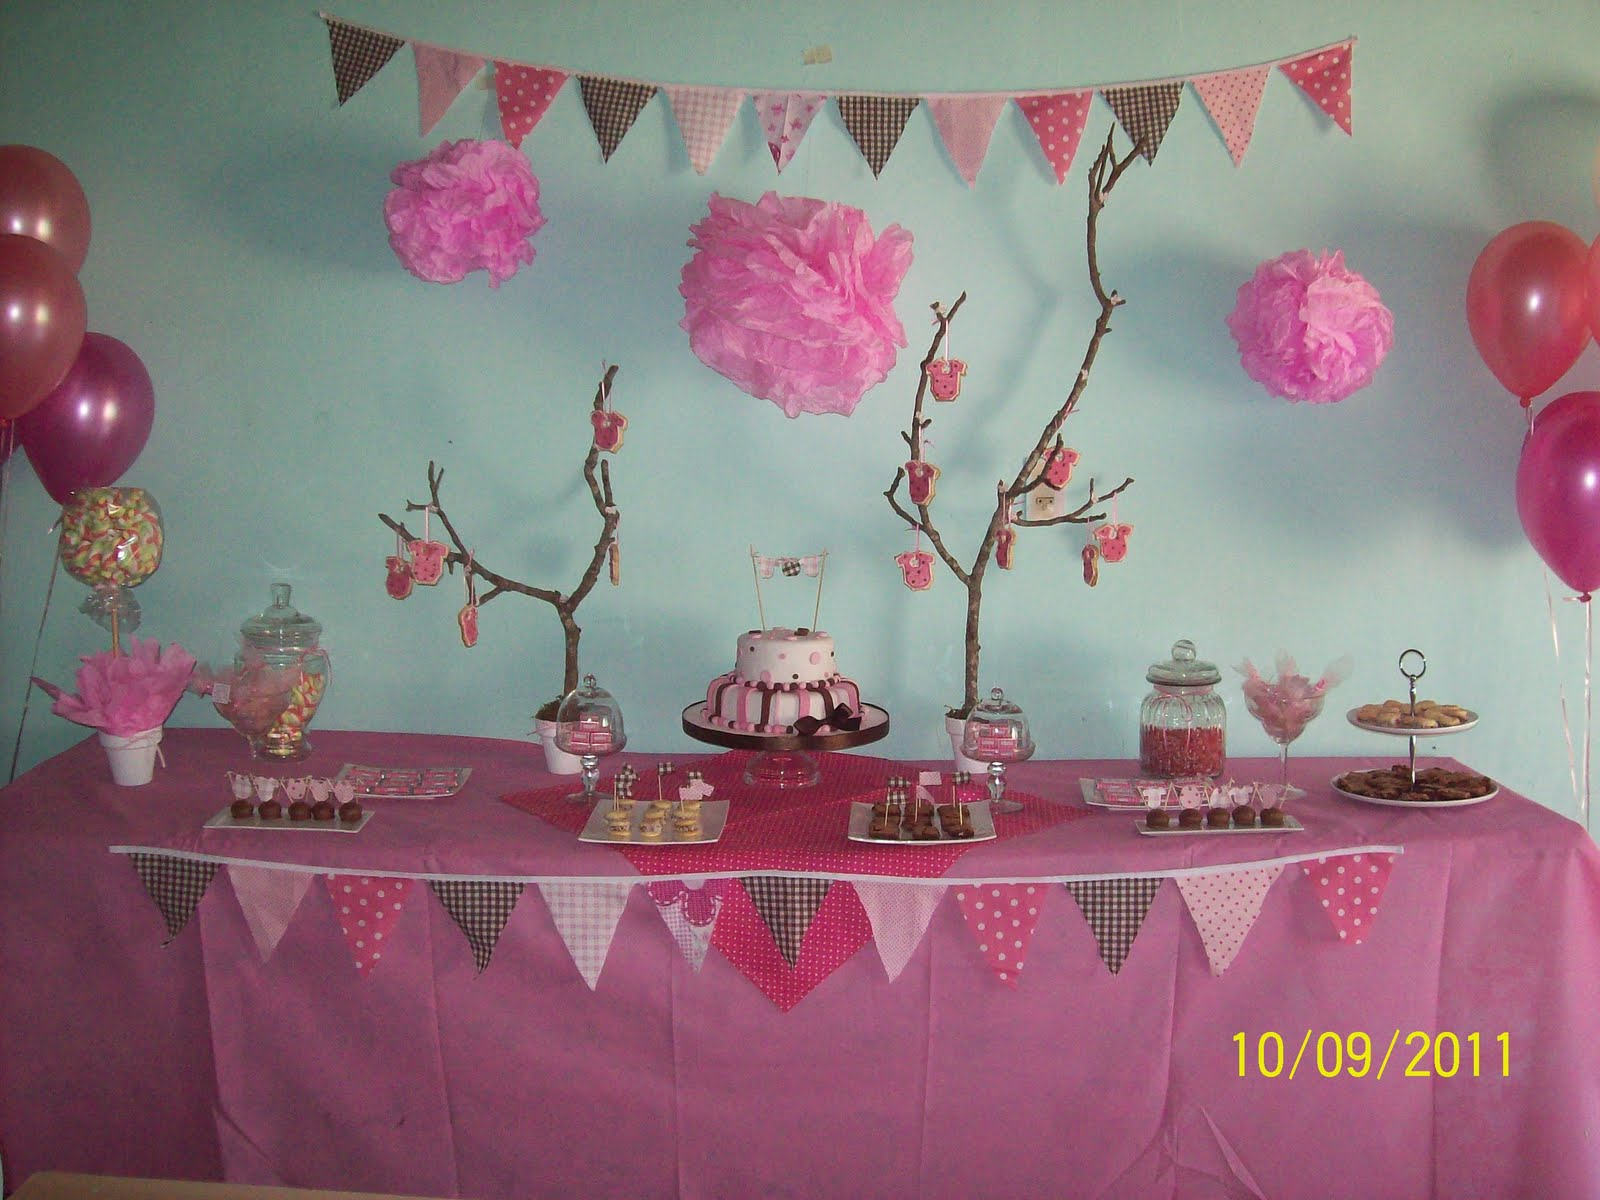 en tonos rosas y chocolates este baby shower super delicado para la